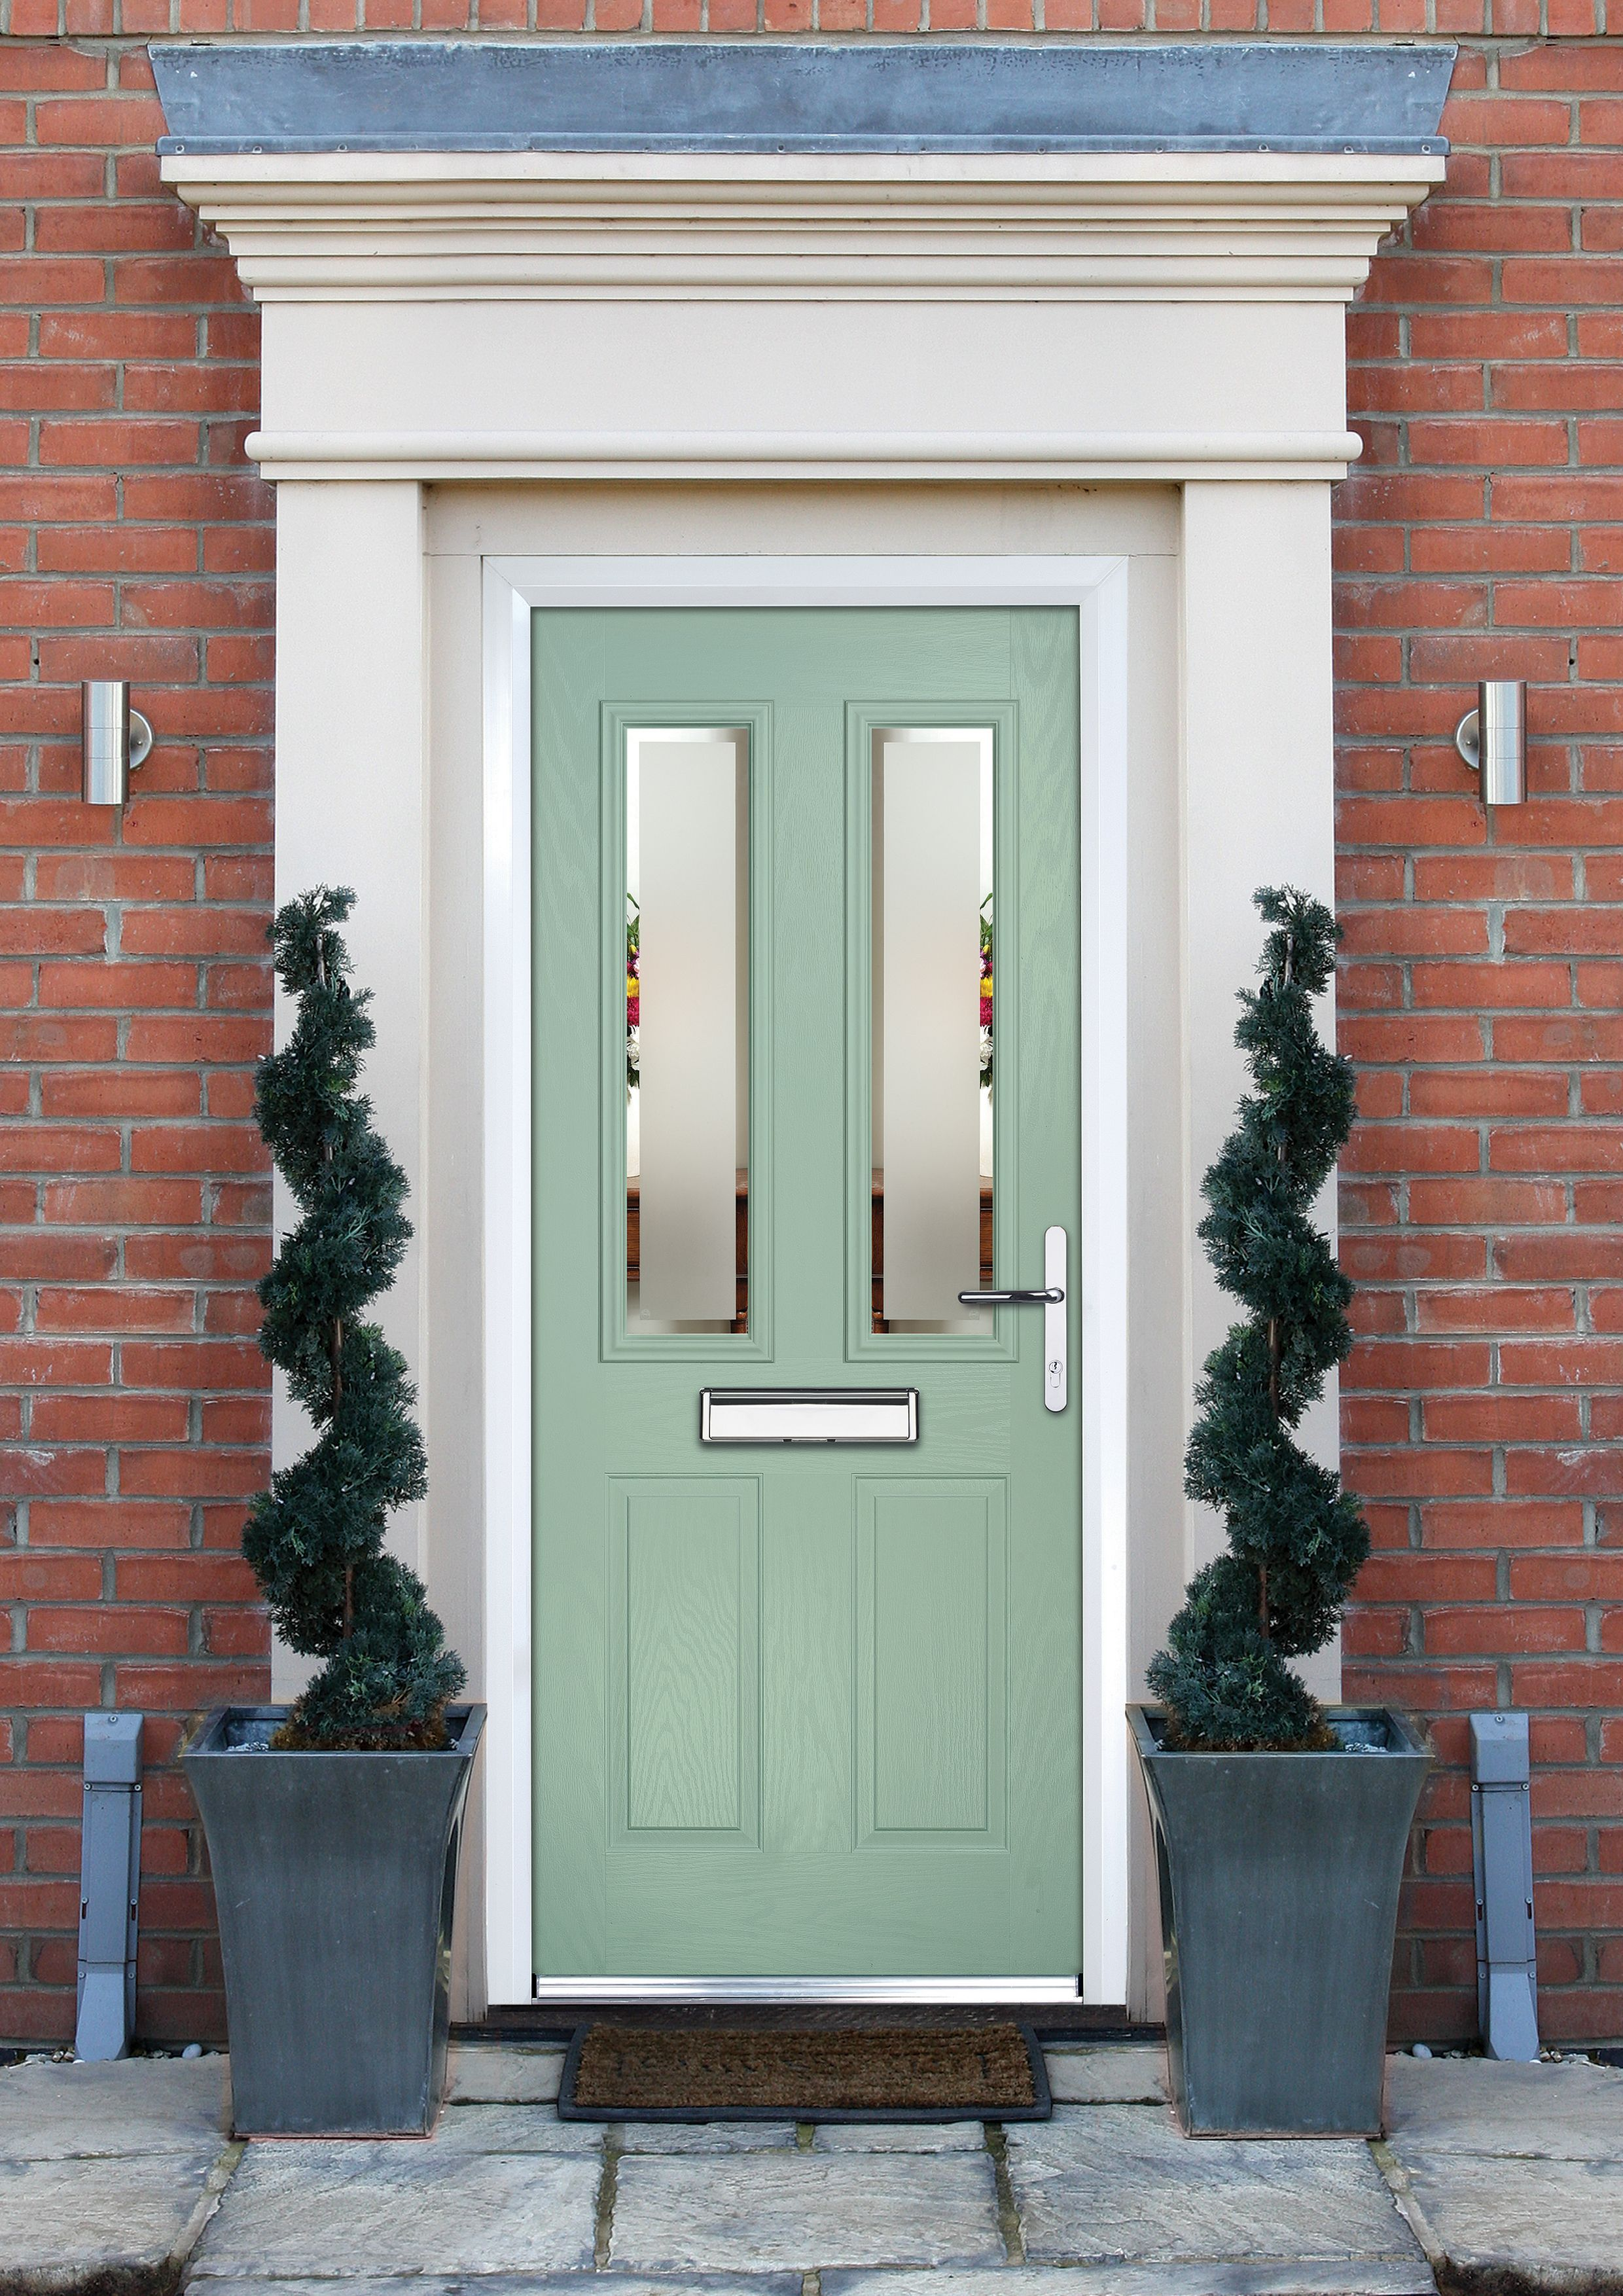 Crystal 4 Panel Frosted Glazed Green Composite Lh External Front Door Set H 2055mm W 920mm In 2020 External Front Doors External Doors Front Door Design